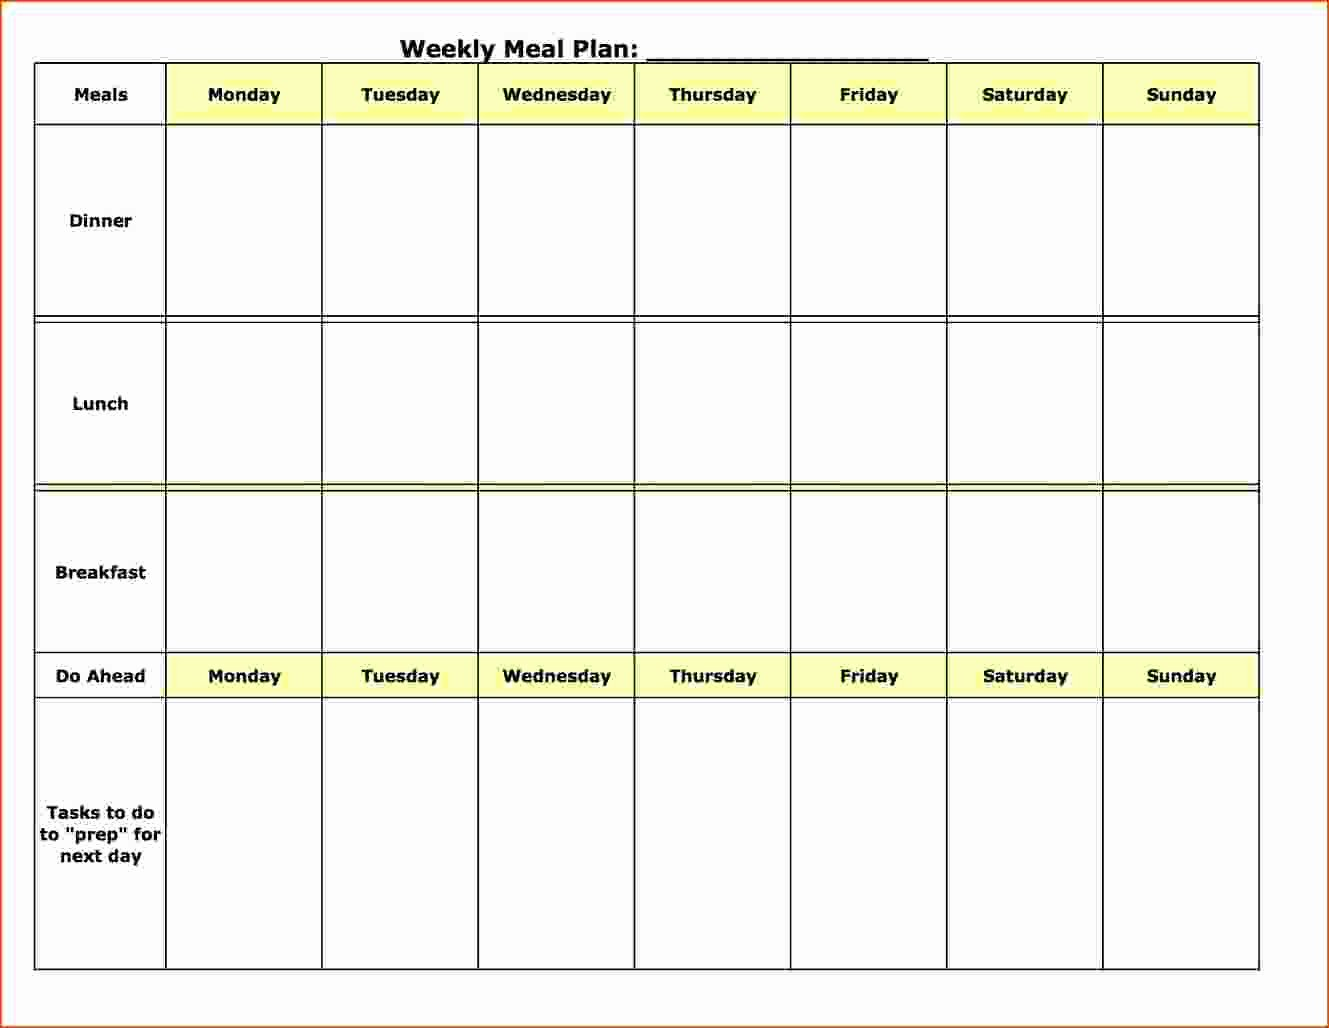 Meal Plan Calendar Template Awesome 8 Weekly Meal Plan Template Bookletemplate